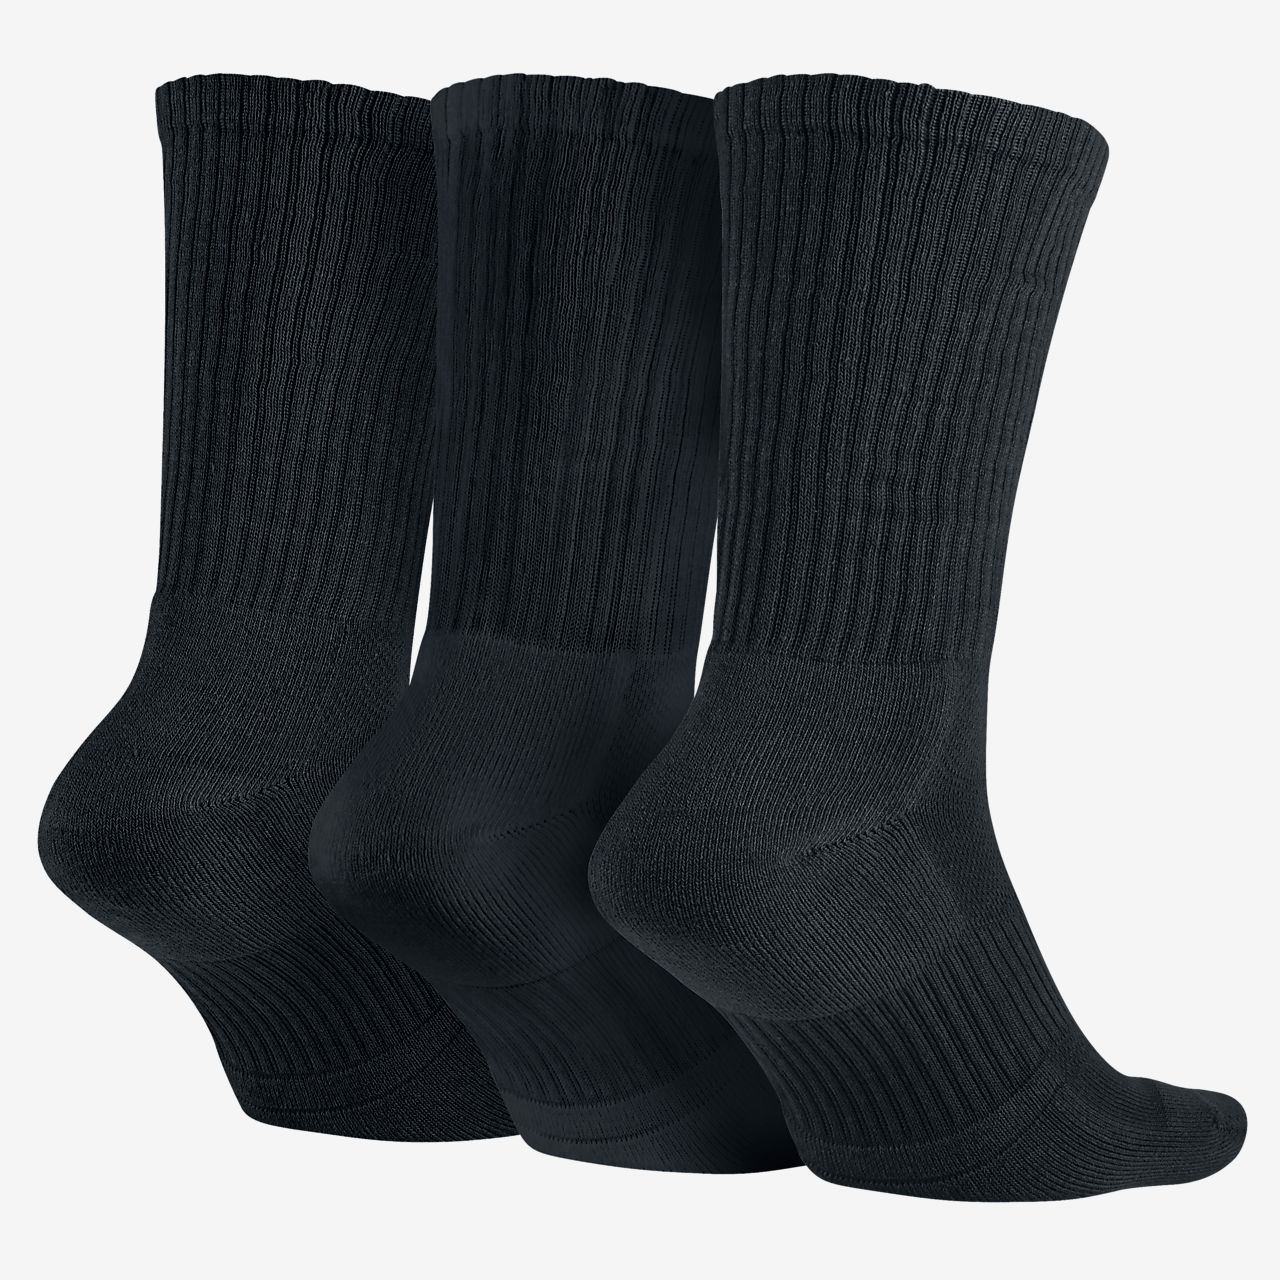 nike dri fit cushioned crew 3 pair training socks. Black Bedroom Furniture Sets. Home Design Ideas